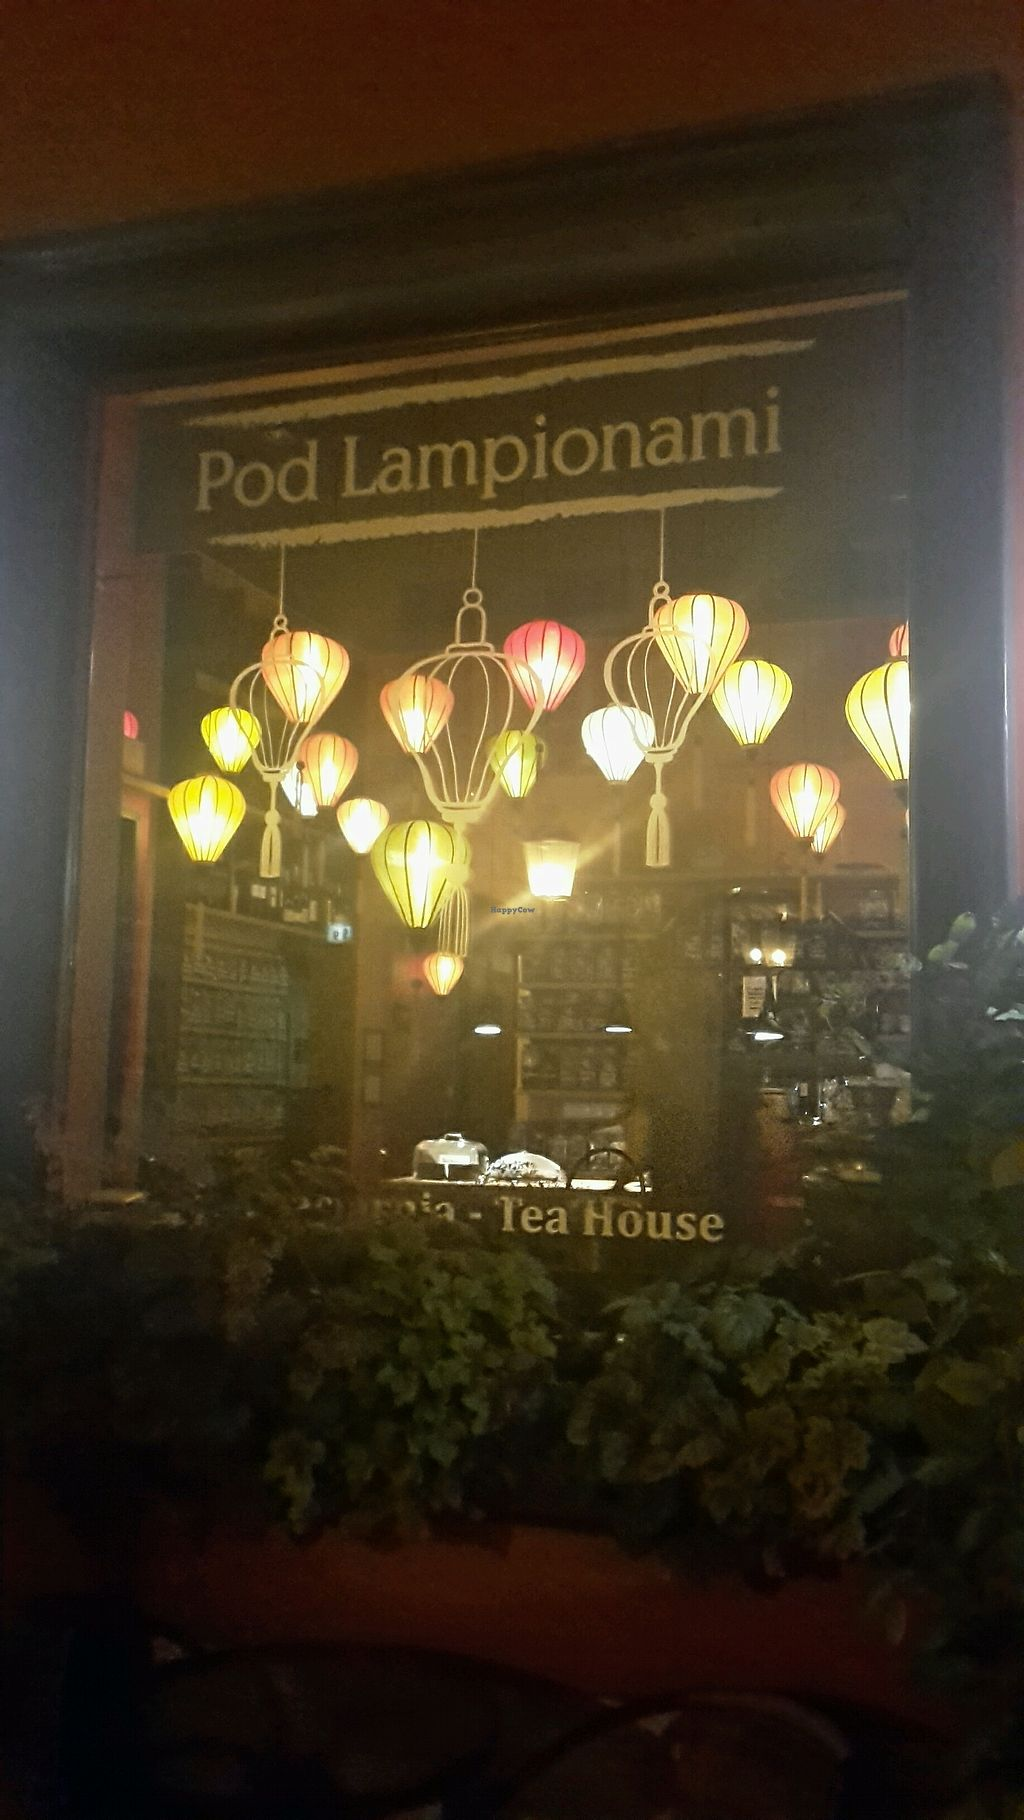 """Photo of Pod Lampionami  by <a href=""""/members/profile/Mariaira"""">Mariaira</a> <br/>Lampions  <br/> August 31, 2017  - <a href='/contact/abuse/image/92763/299316'>Report</a>"""